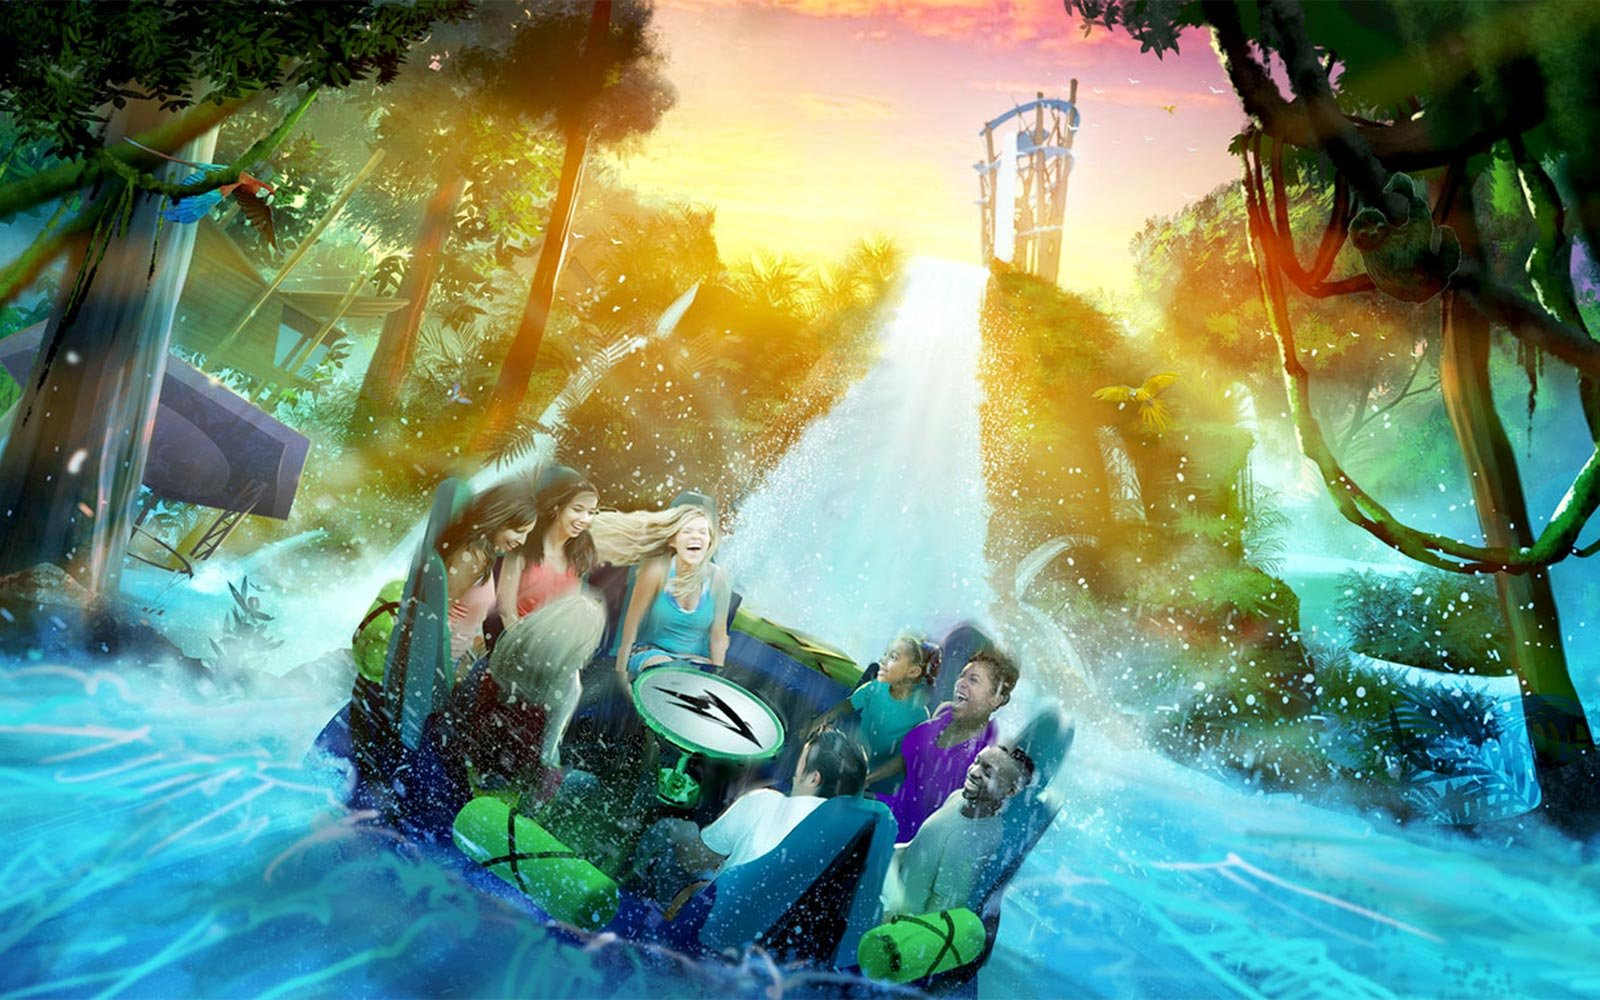 Concept art for the Infinity Falls ride coming to SeaWorld Orlando in 2018